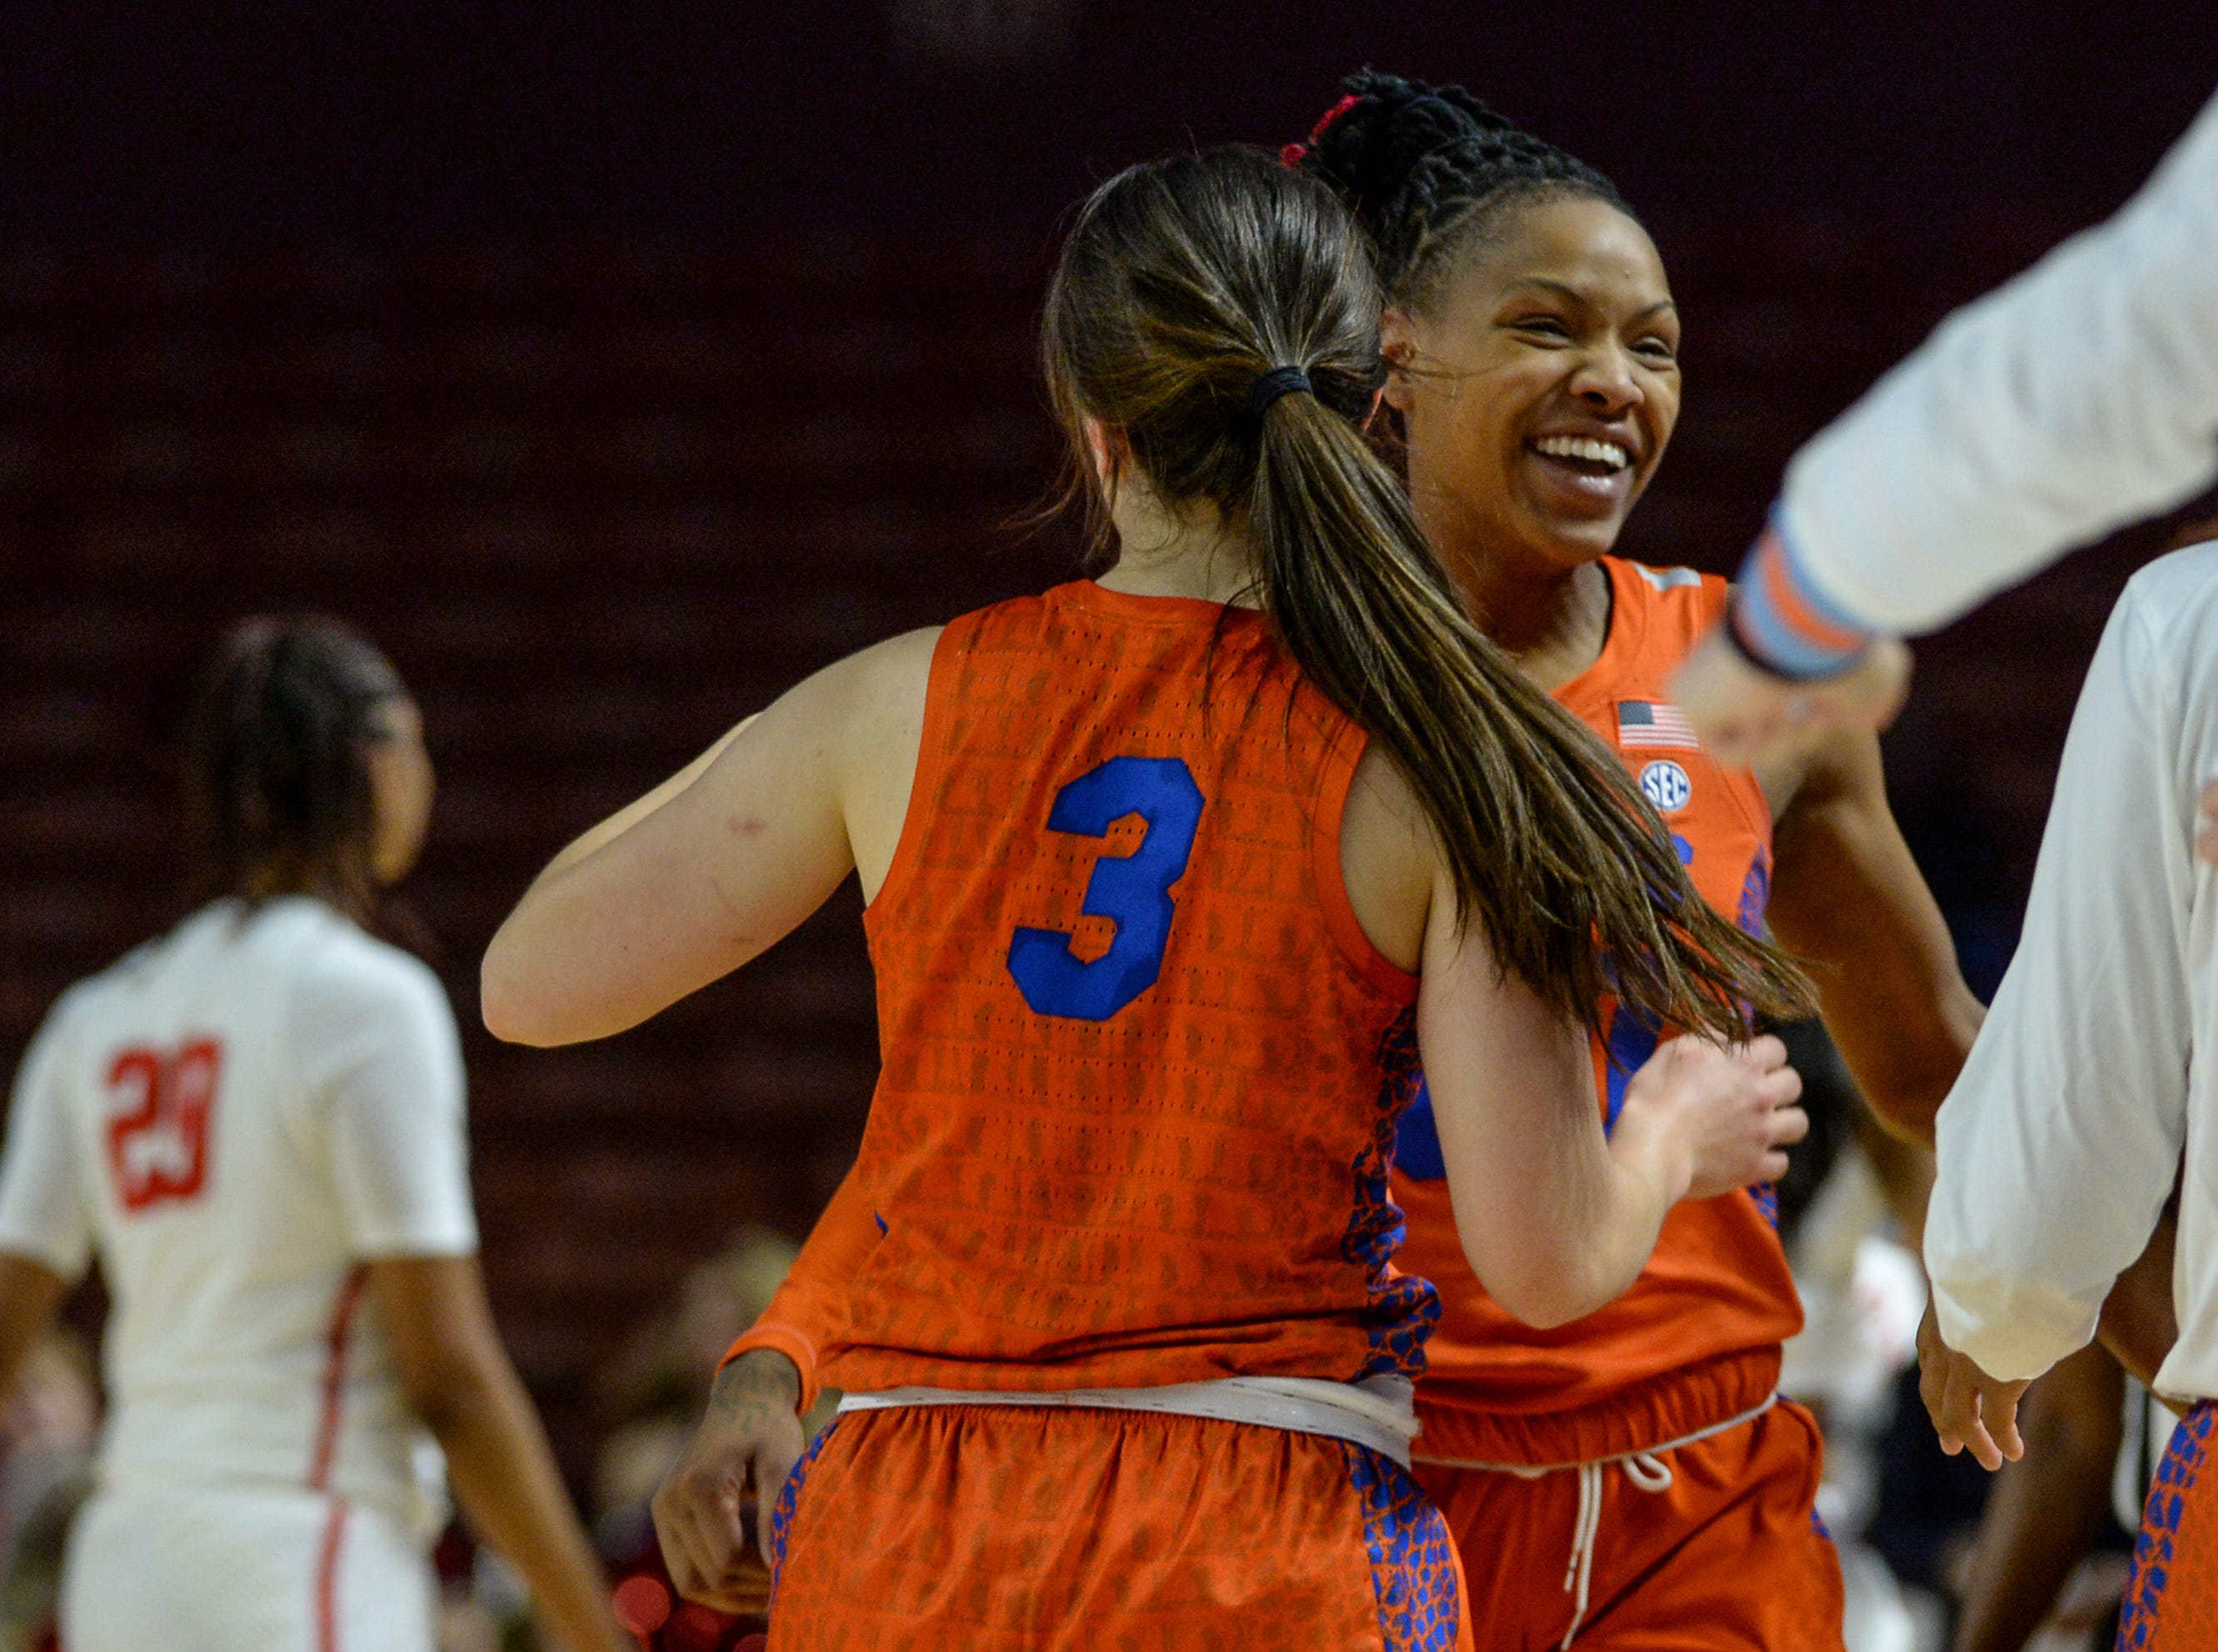 Florida guard Funda Nakkasoglu(3) and Florida guard Delicia Washington(0) celebrates a win over Ole Miss in the Southeastern Conference Women's Tournament game at Bon Secour Wellness Arena in Greenville Wednesday, March 6, 2019.